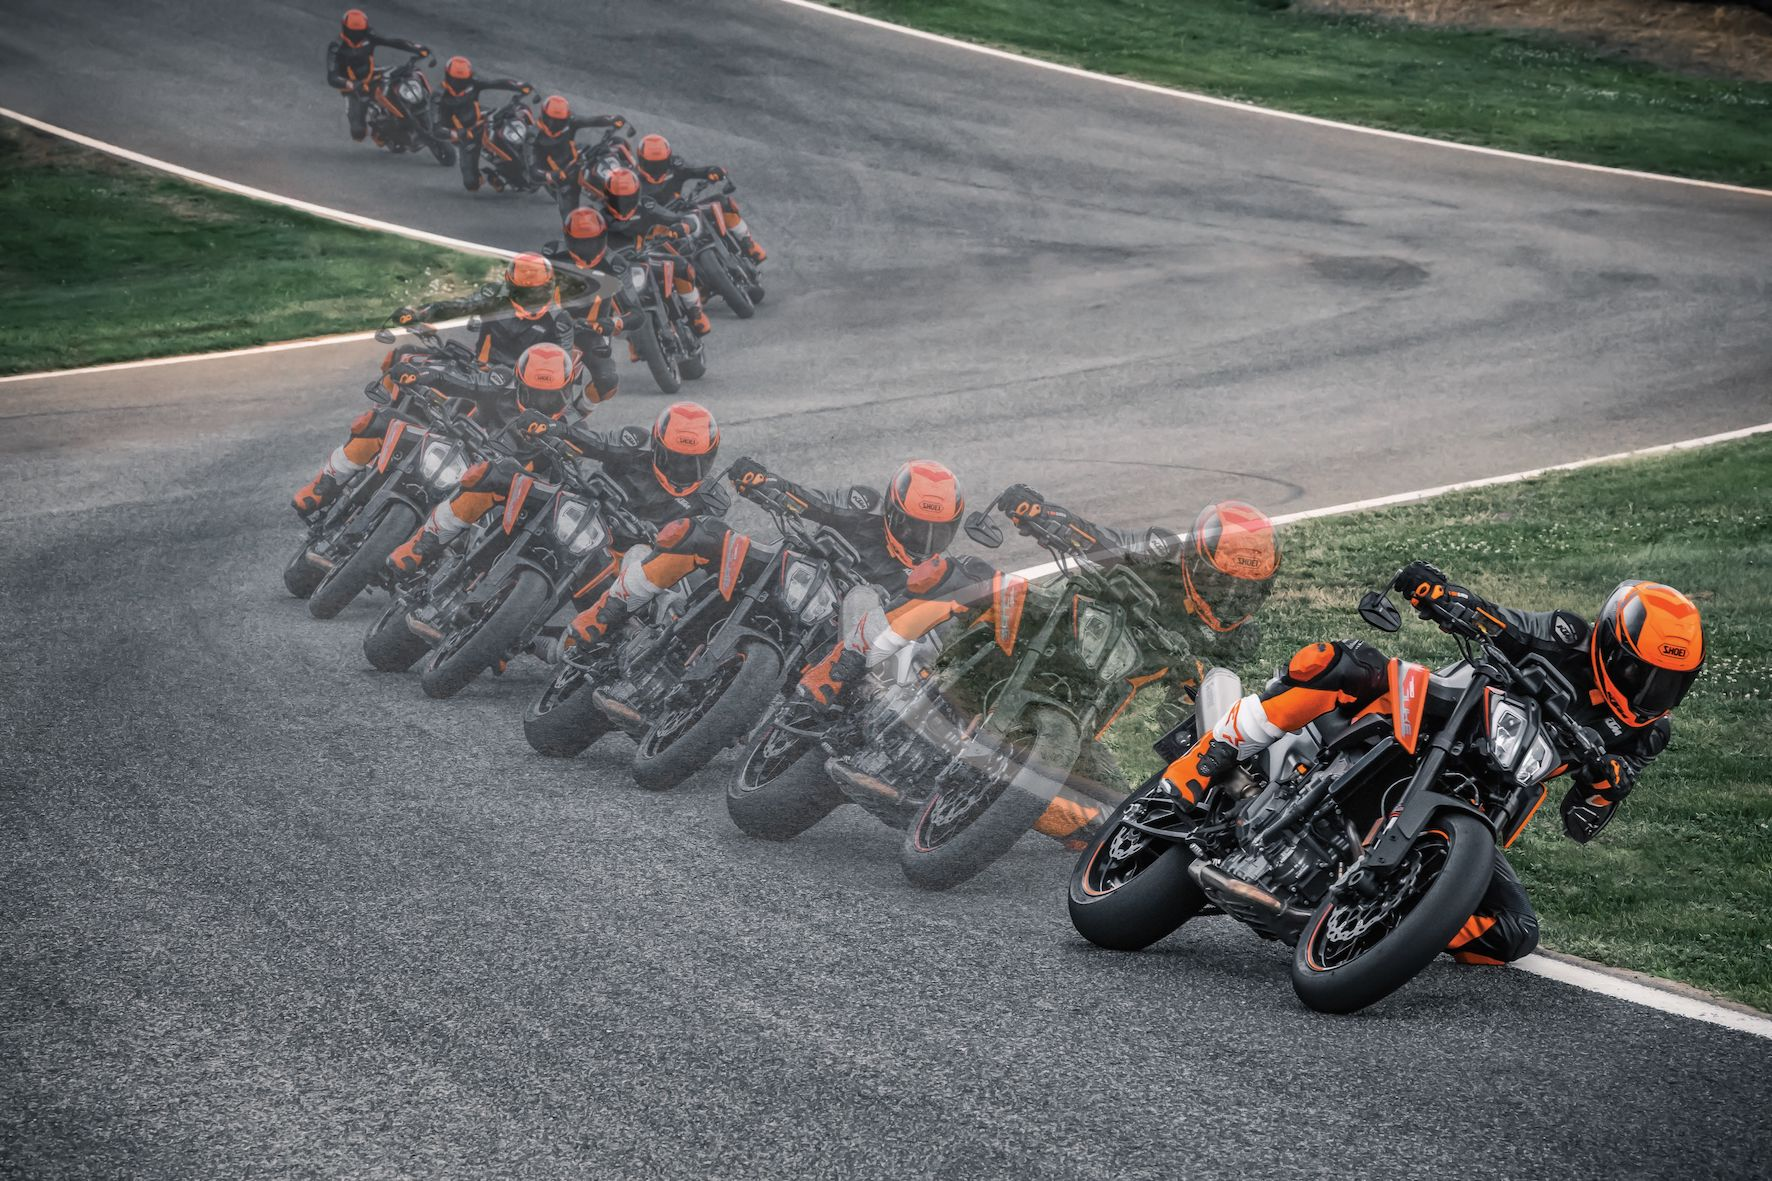 The KTM 790 Duke is as happy commuting to work as it is chasing down a set of twisty turns